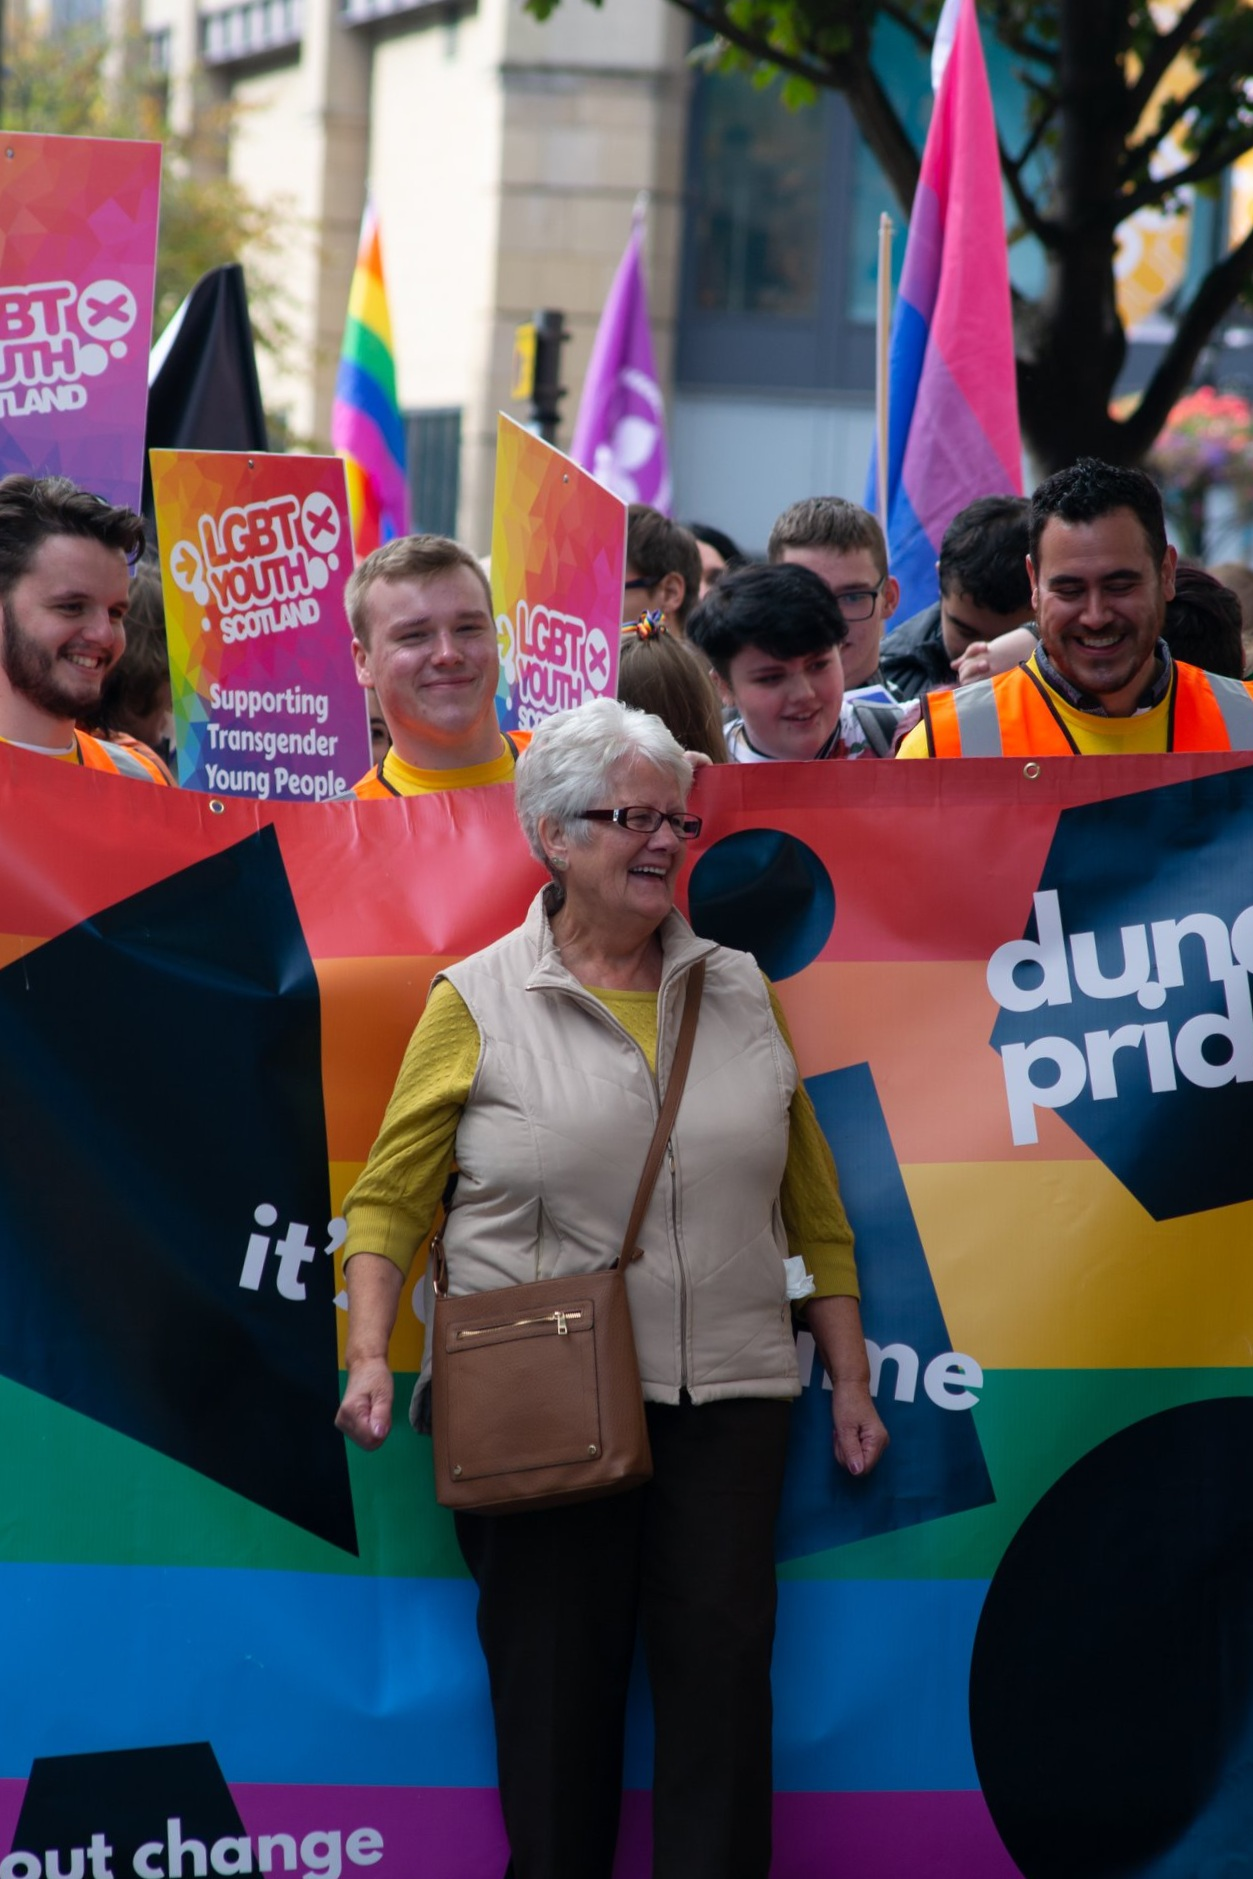 announcing Pride Day! - Yaaaassss! Saturday 21st September 2019 will be Pride Day! There will be lots going on including the main event at Pride Village at Slessor Gardens which will involve lots of fiercely savage acts on stage and fabulous offerings at Pride Market. And of course…..there's Pride Parade! We've got lots more tea to spill over the next few months but check out what's been announced already below!Click here to find out more about Pride Day ➝